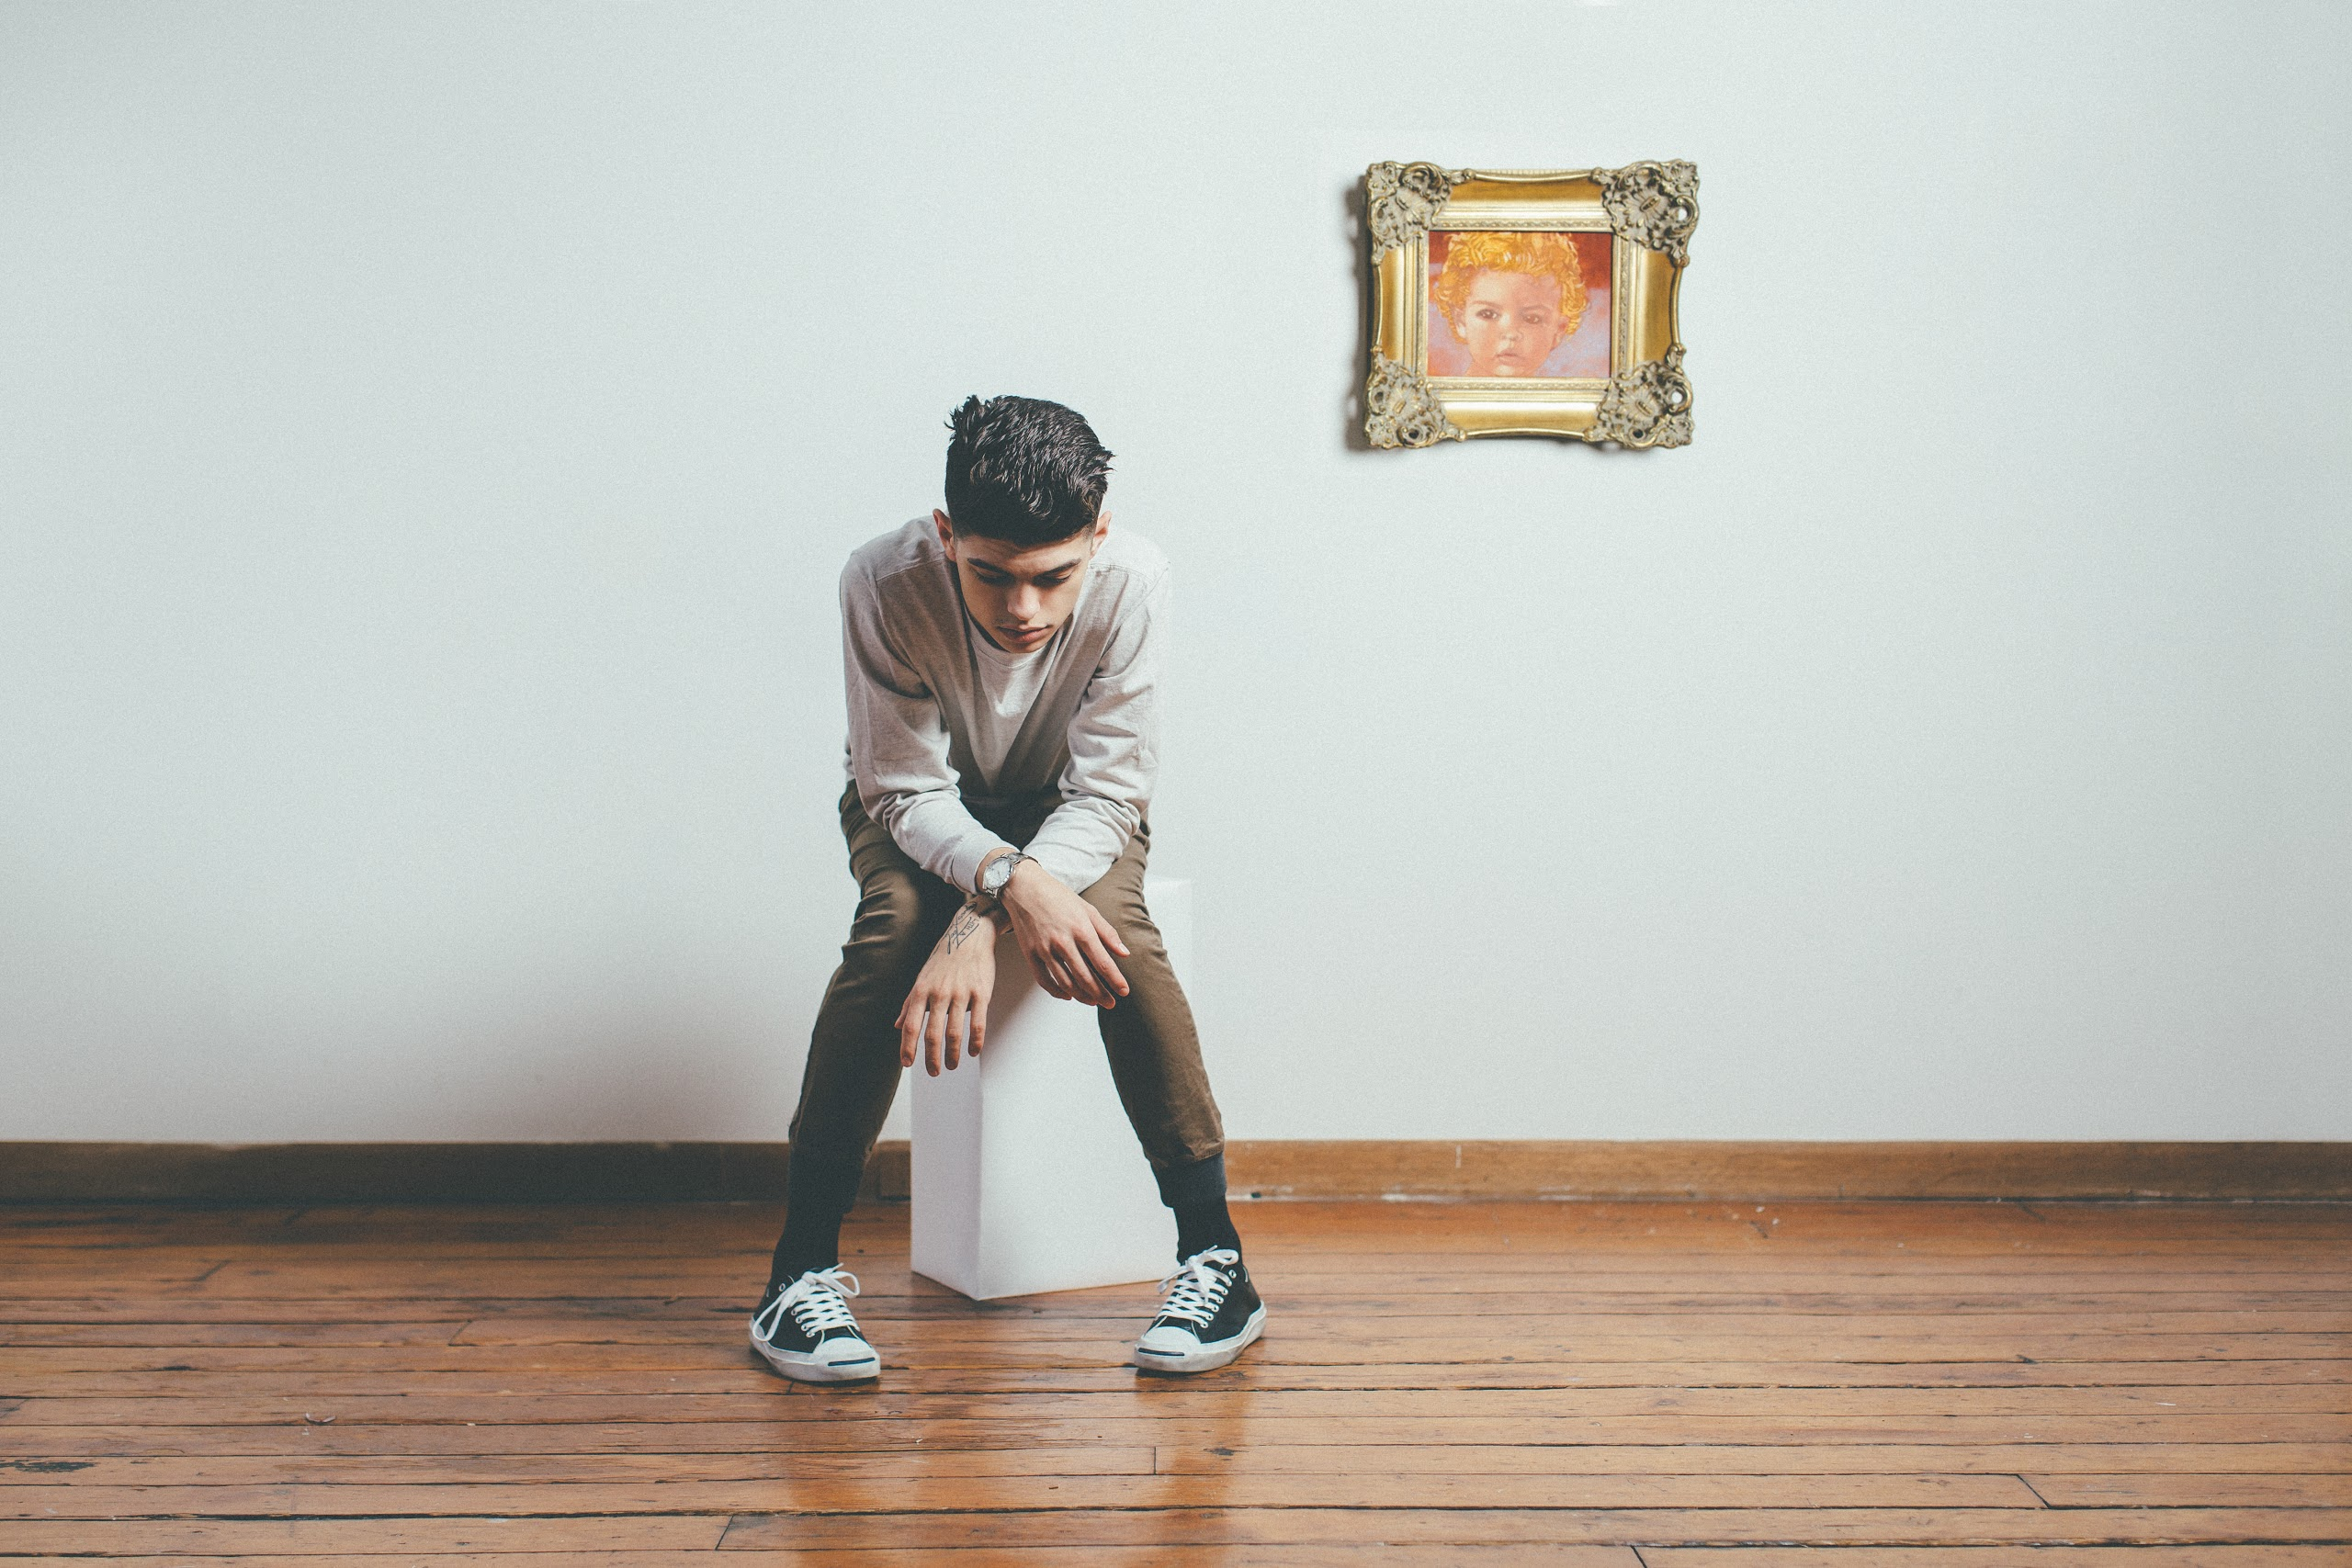 Ian Eastwood Presents: ADULTLESSONS The First Dance Mixtape